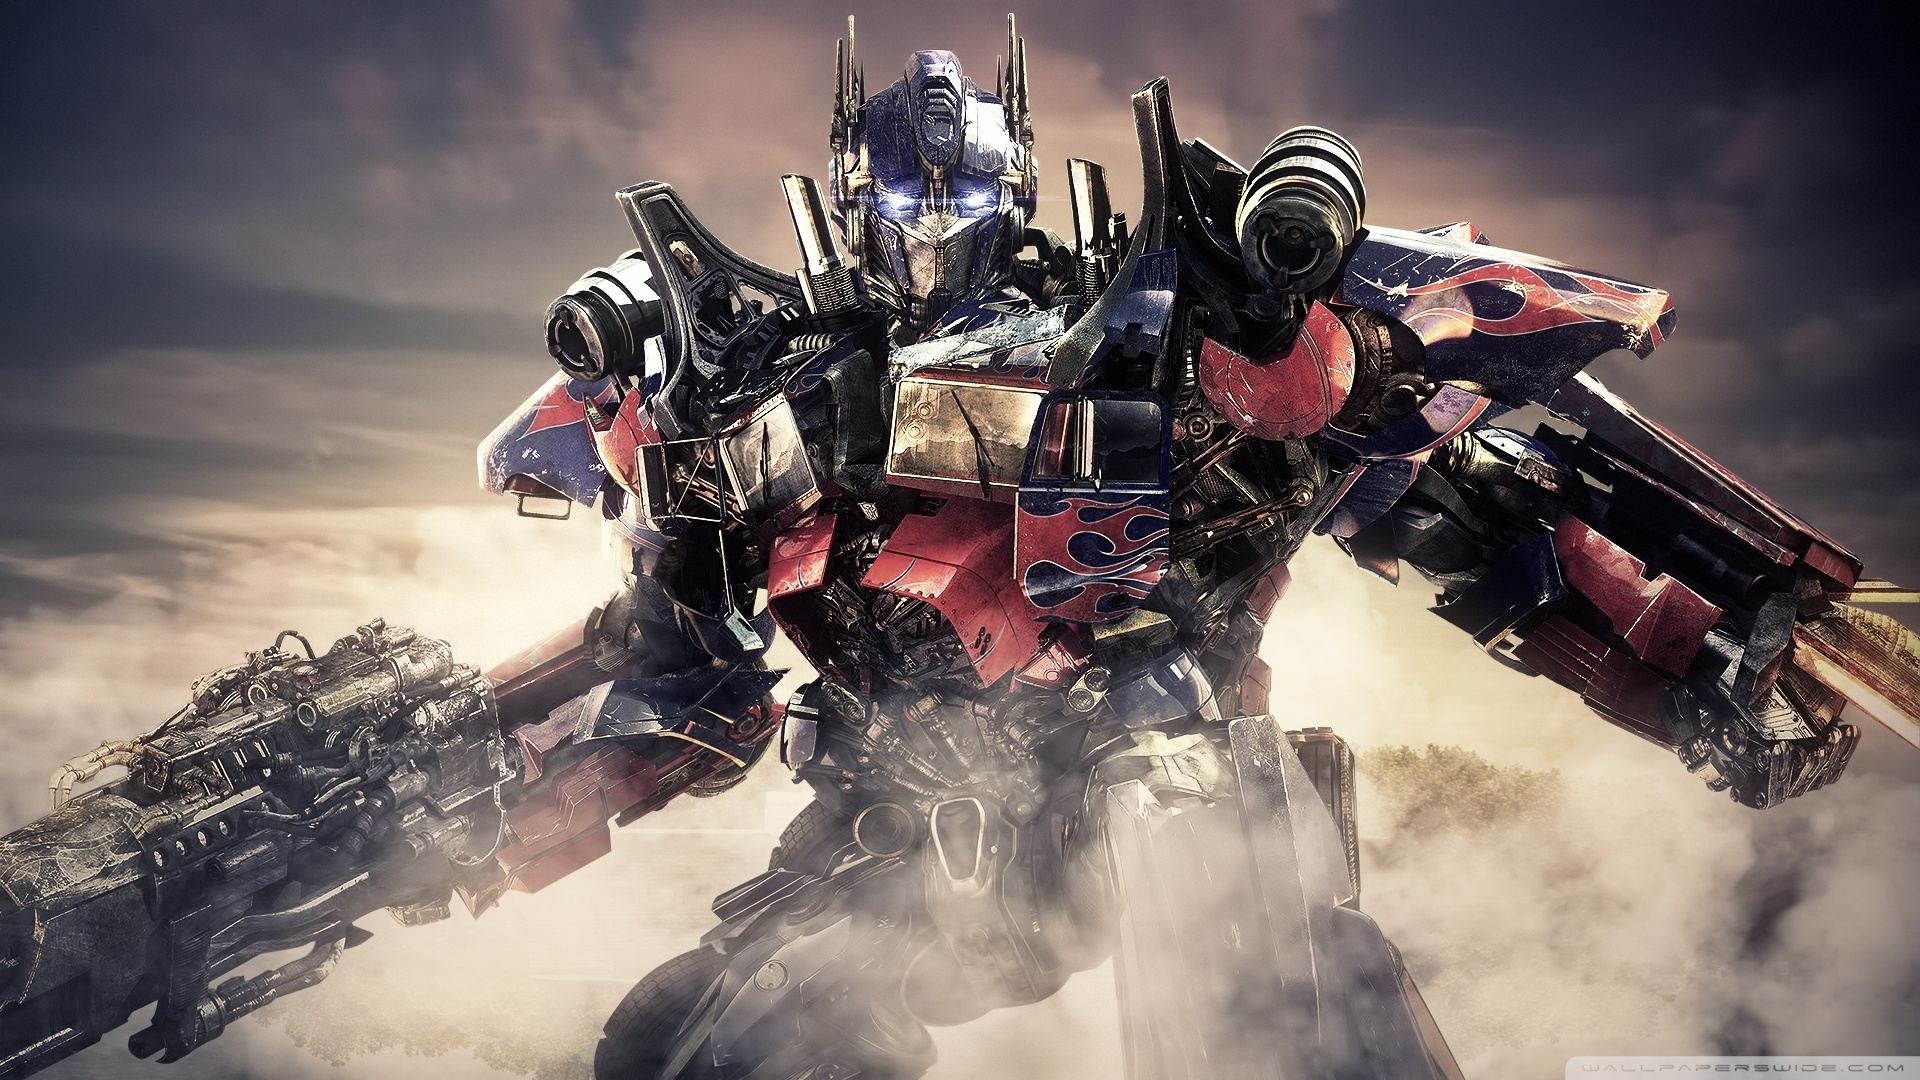 10 most popular transformers wallpaper hd 1080p full hd